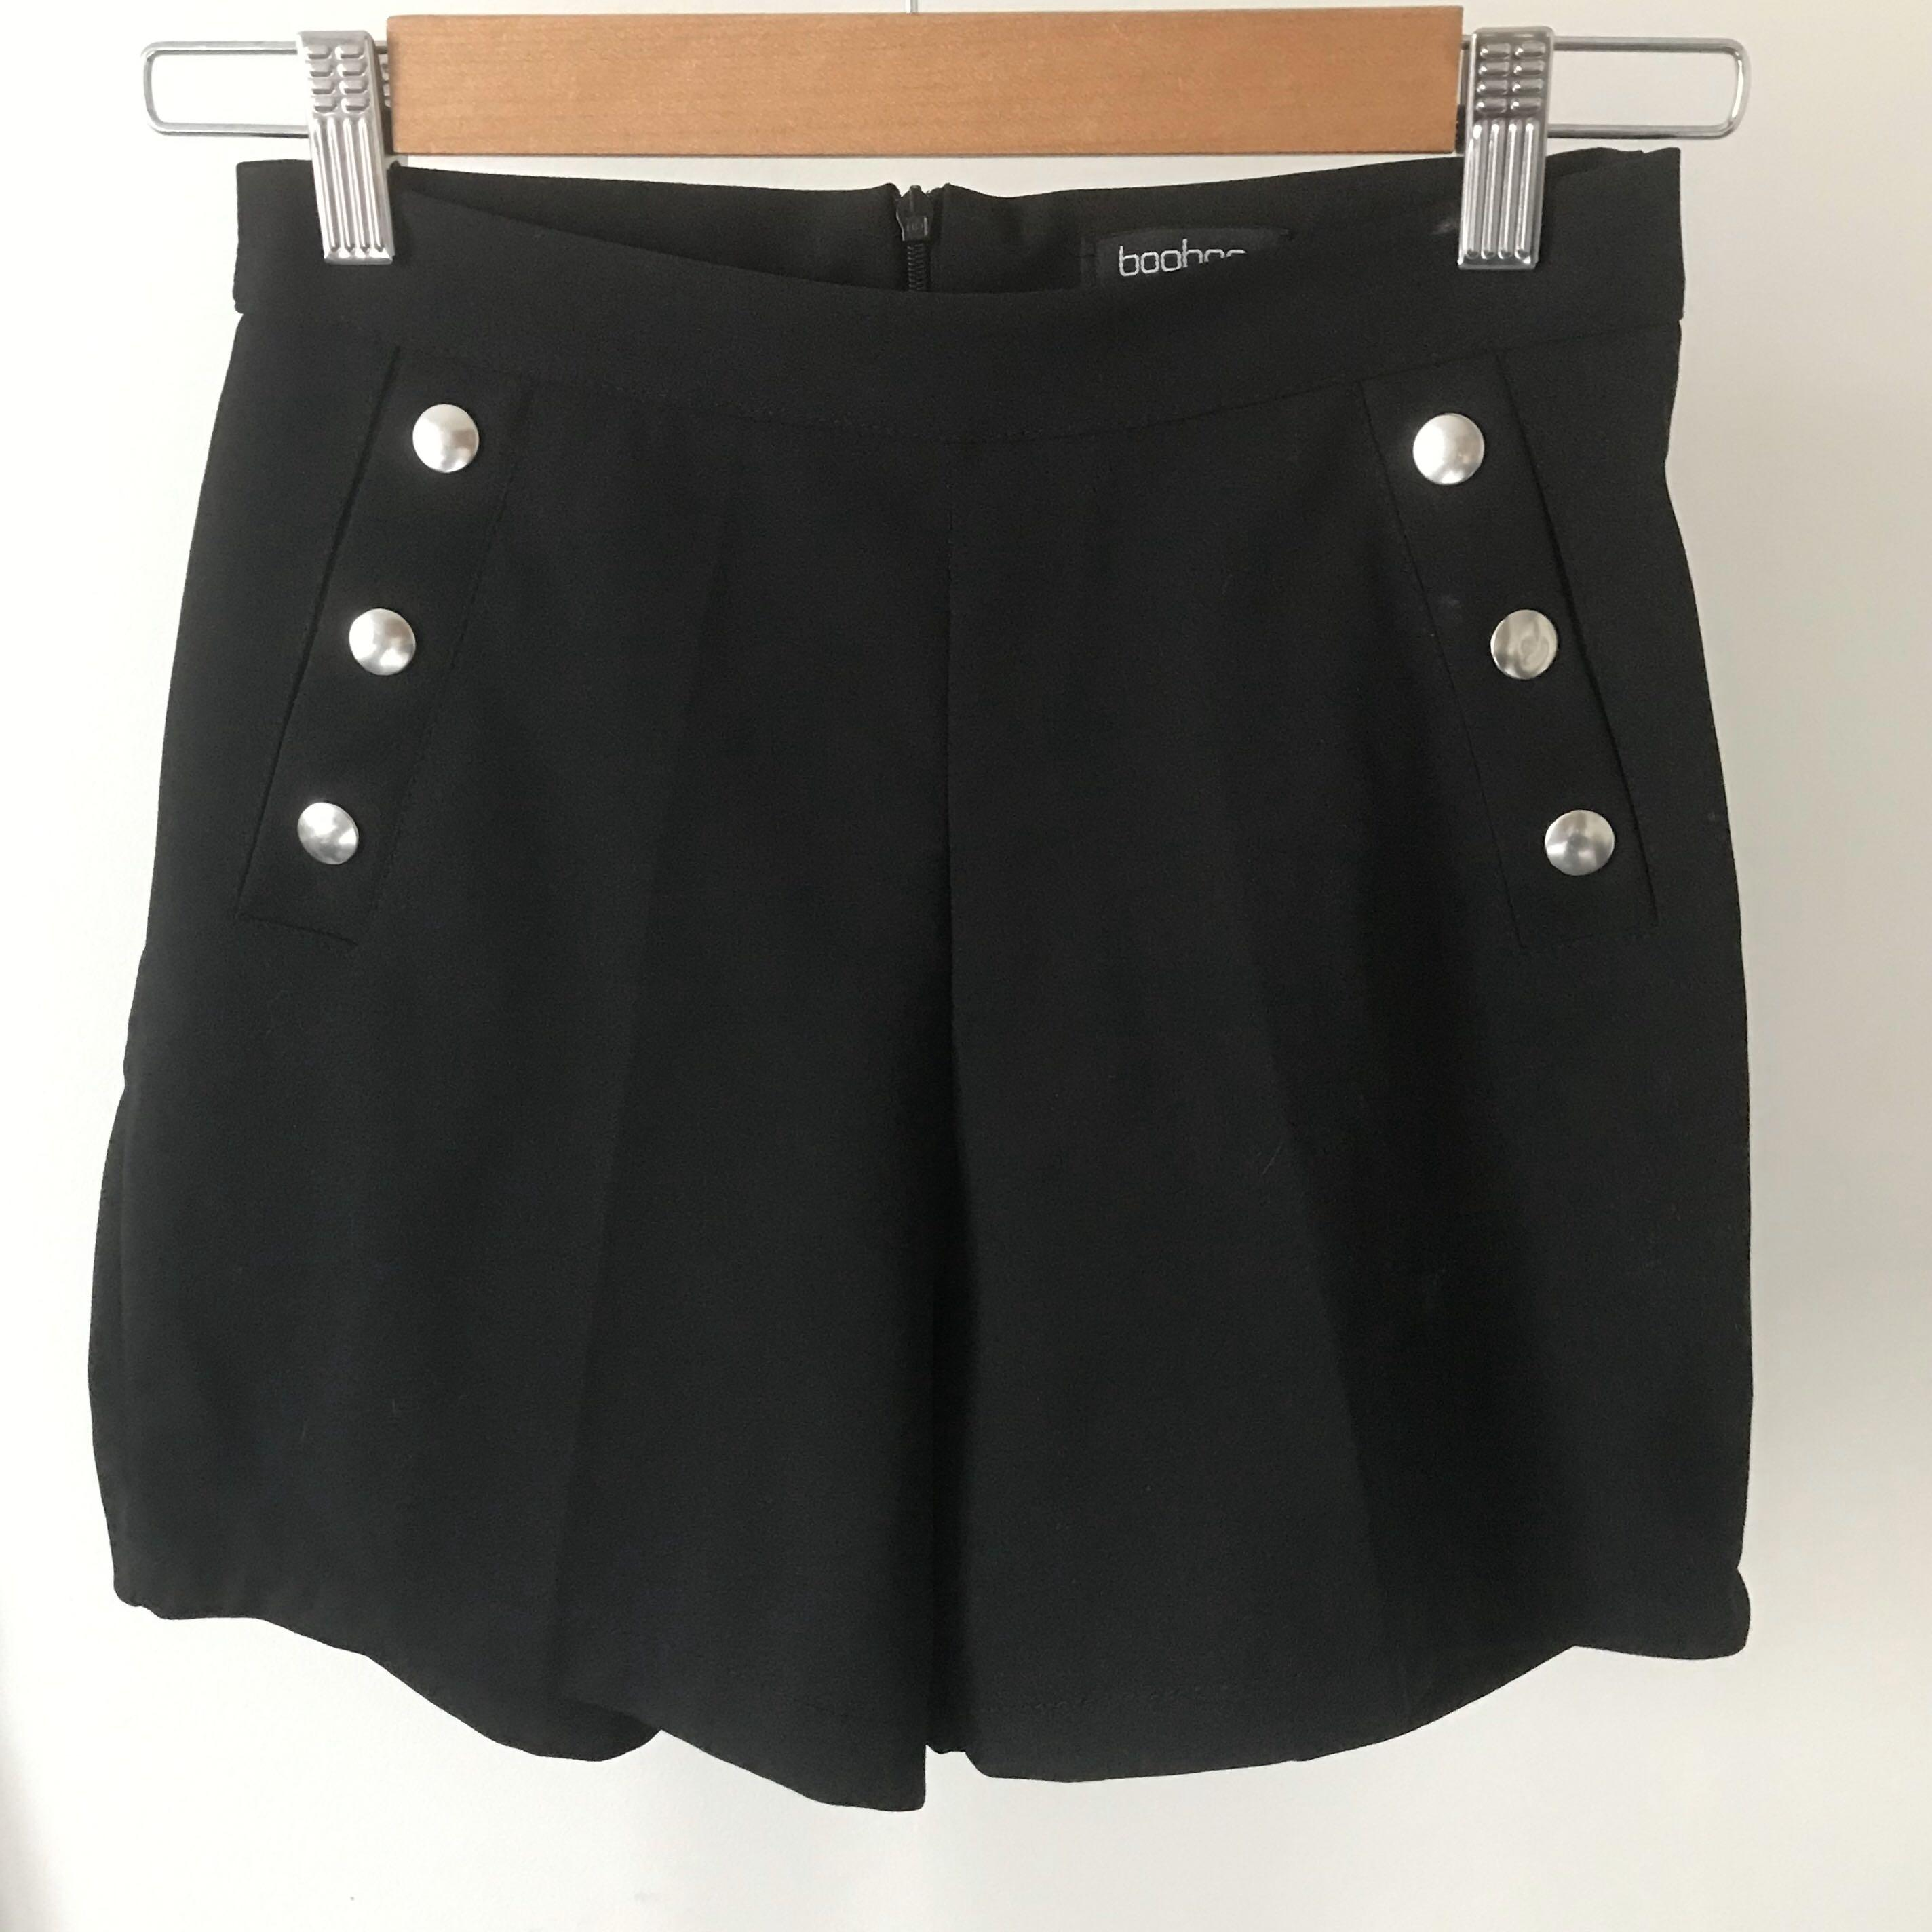 High Waisted Black Shorts with Silver Buttons and Zip - size 8